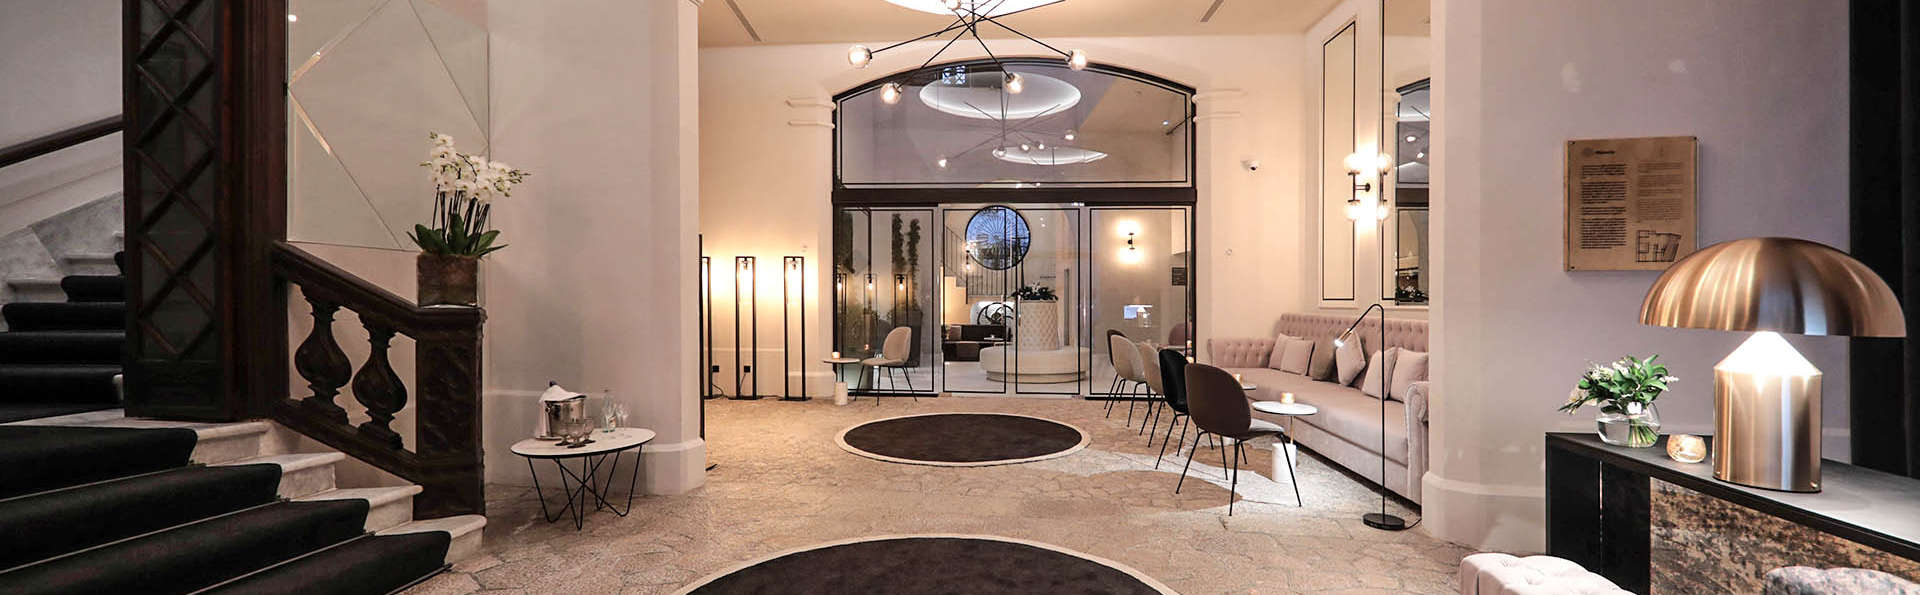 Summum Prime Boutique Hotel - EDIT_Hall_-_Summum_Prime_Boutique_Hotel_01.jpg